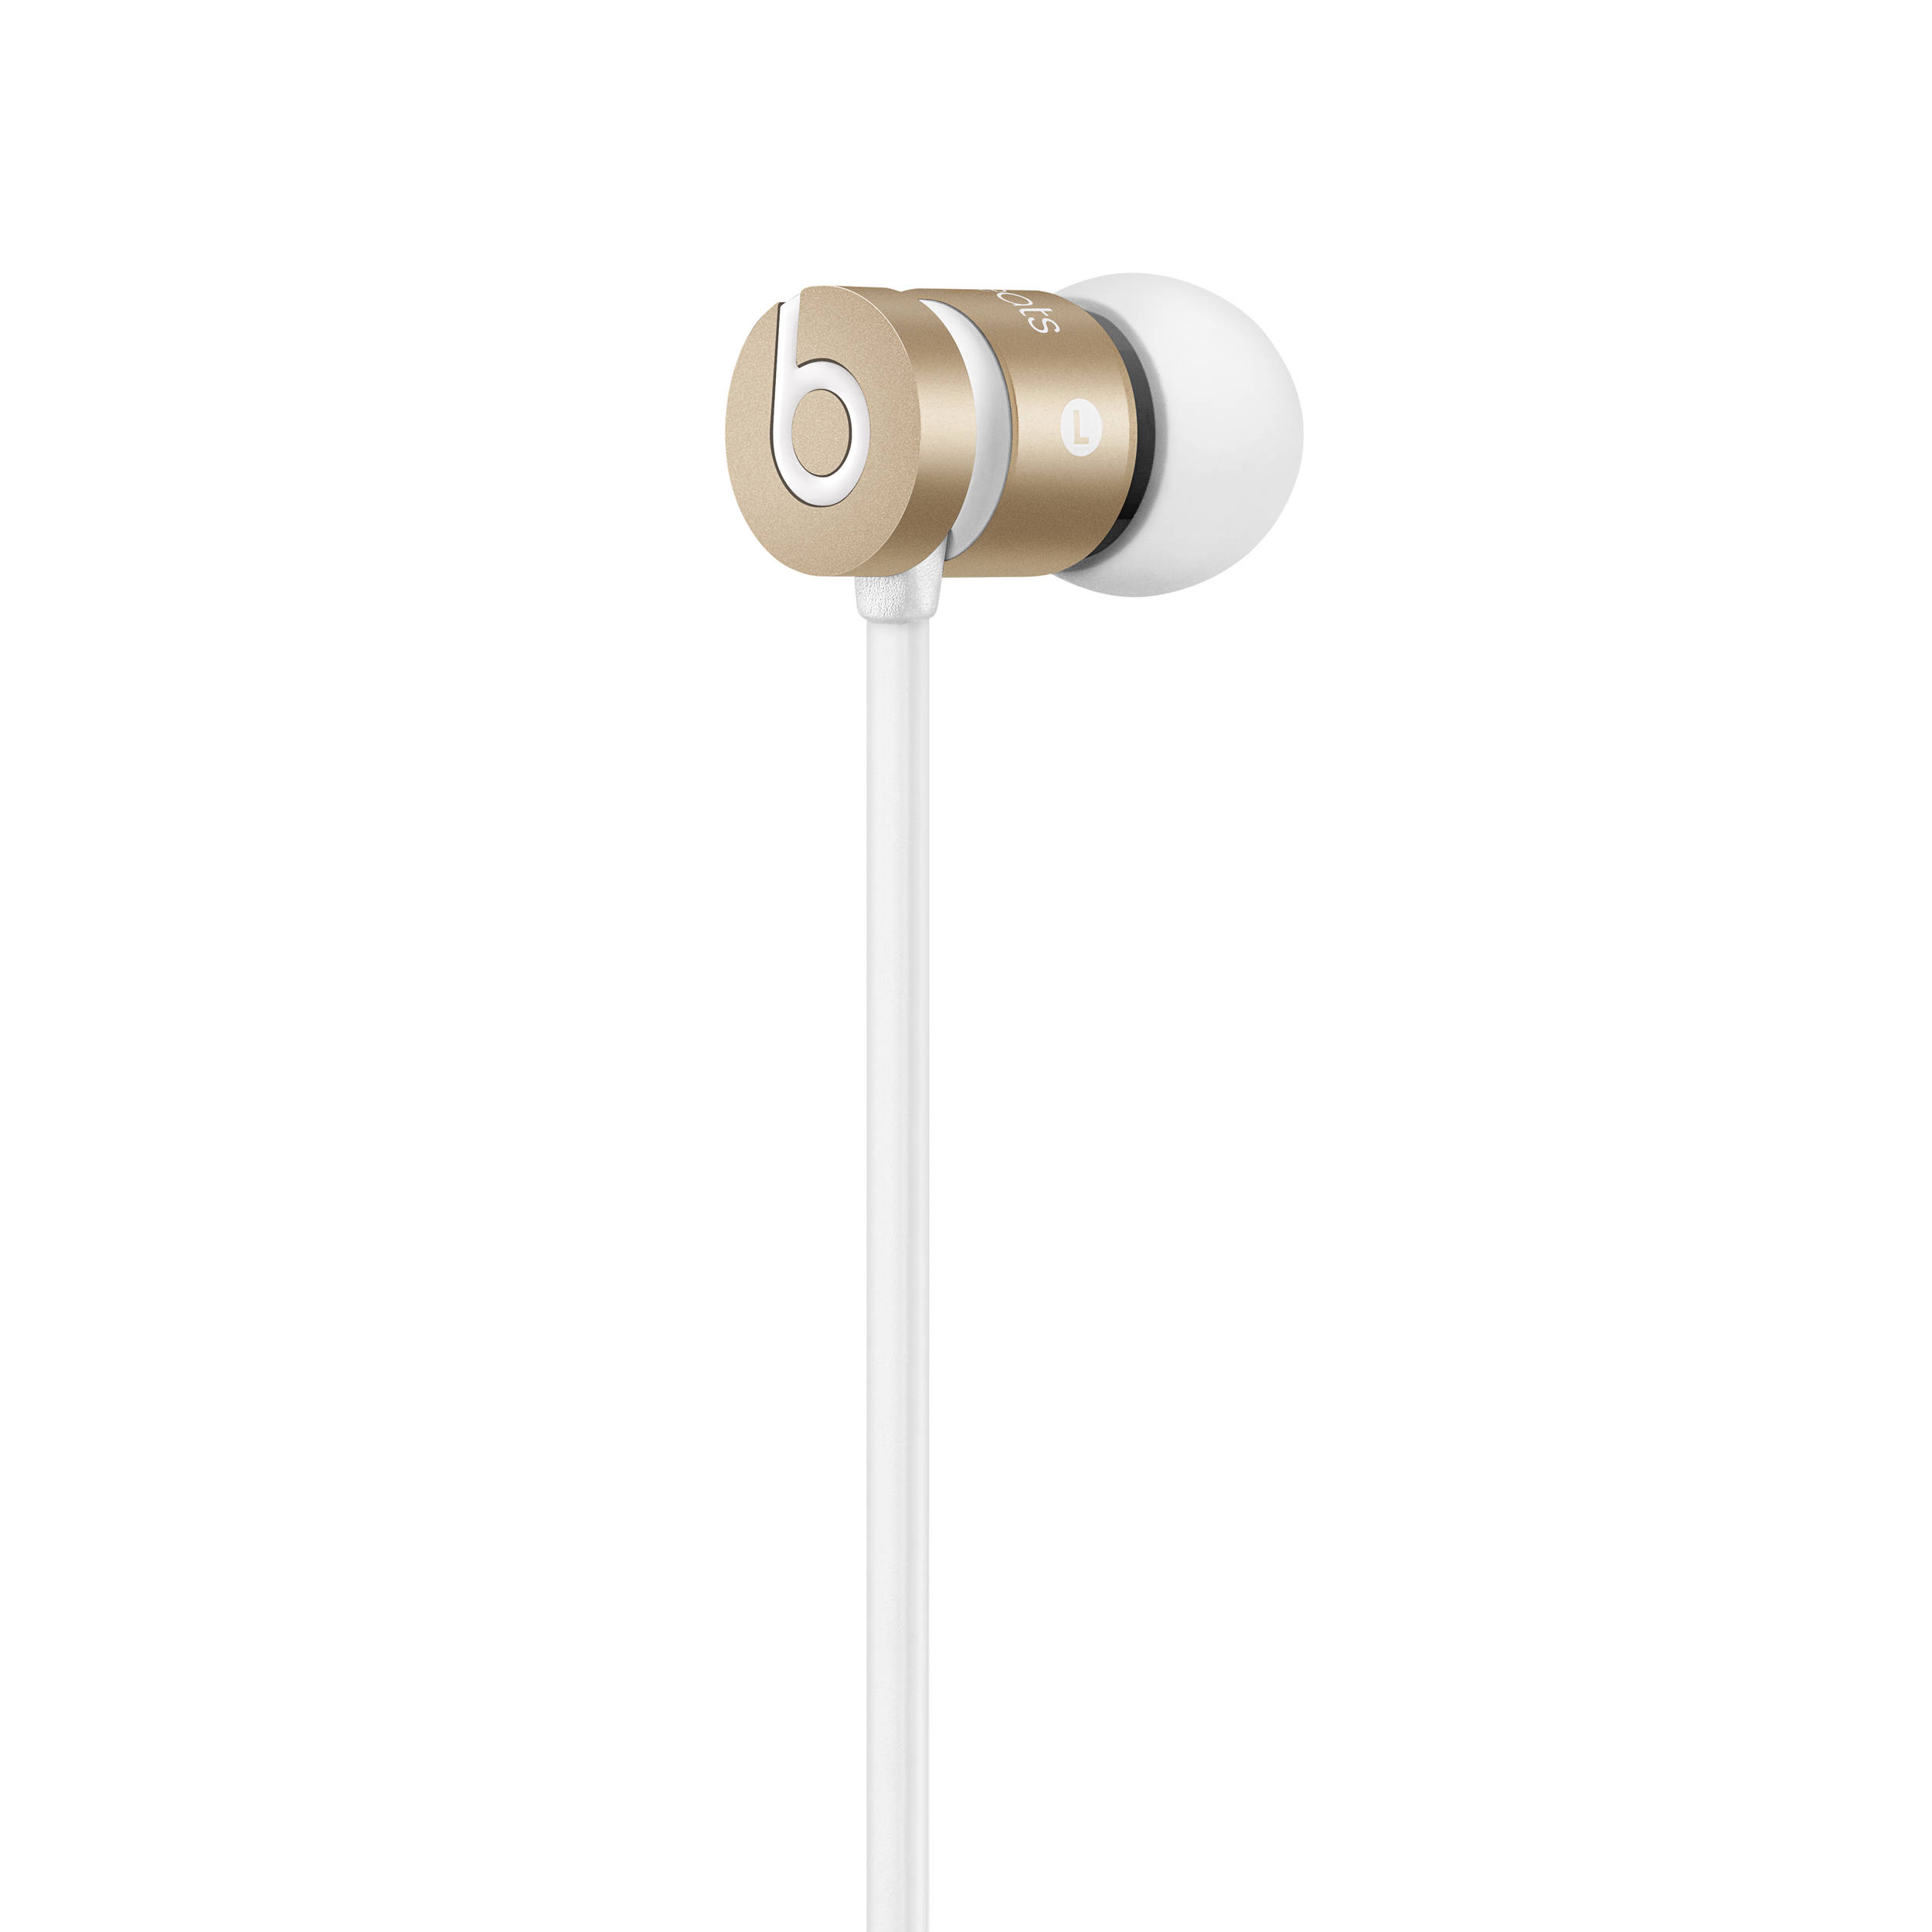 beats by dr dre urbeats in ear headphones gold mk9x2am. Black Bedroom Furniture Sets. Home Design Ideas